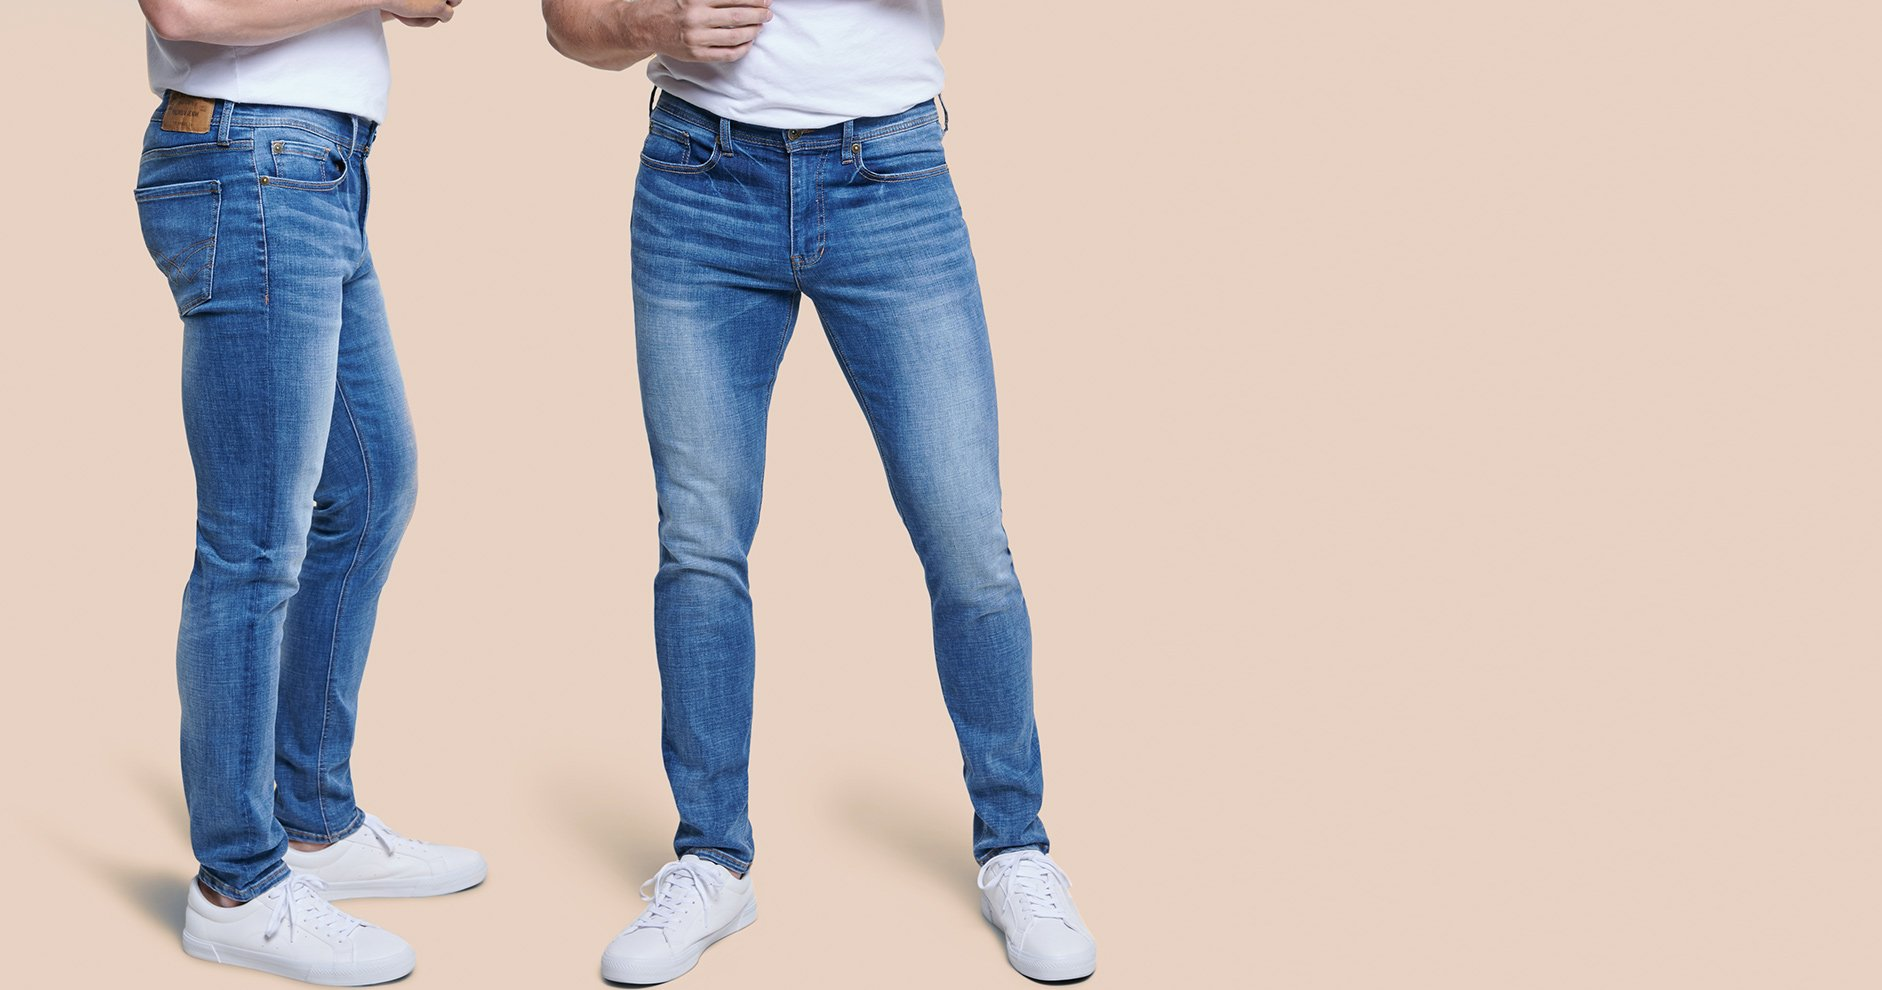 Aiming for a classic look? Straight-fit jeans are your style solution